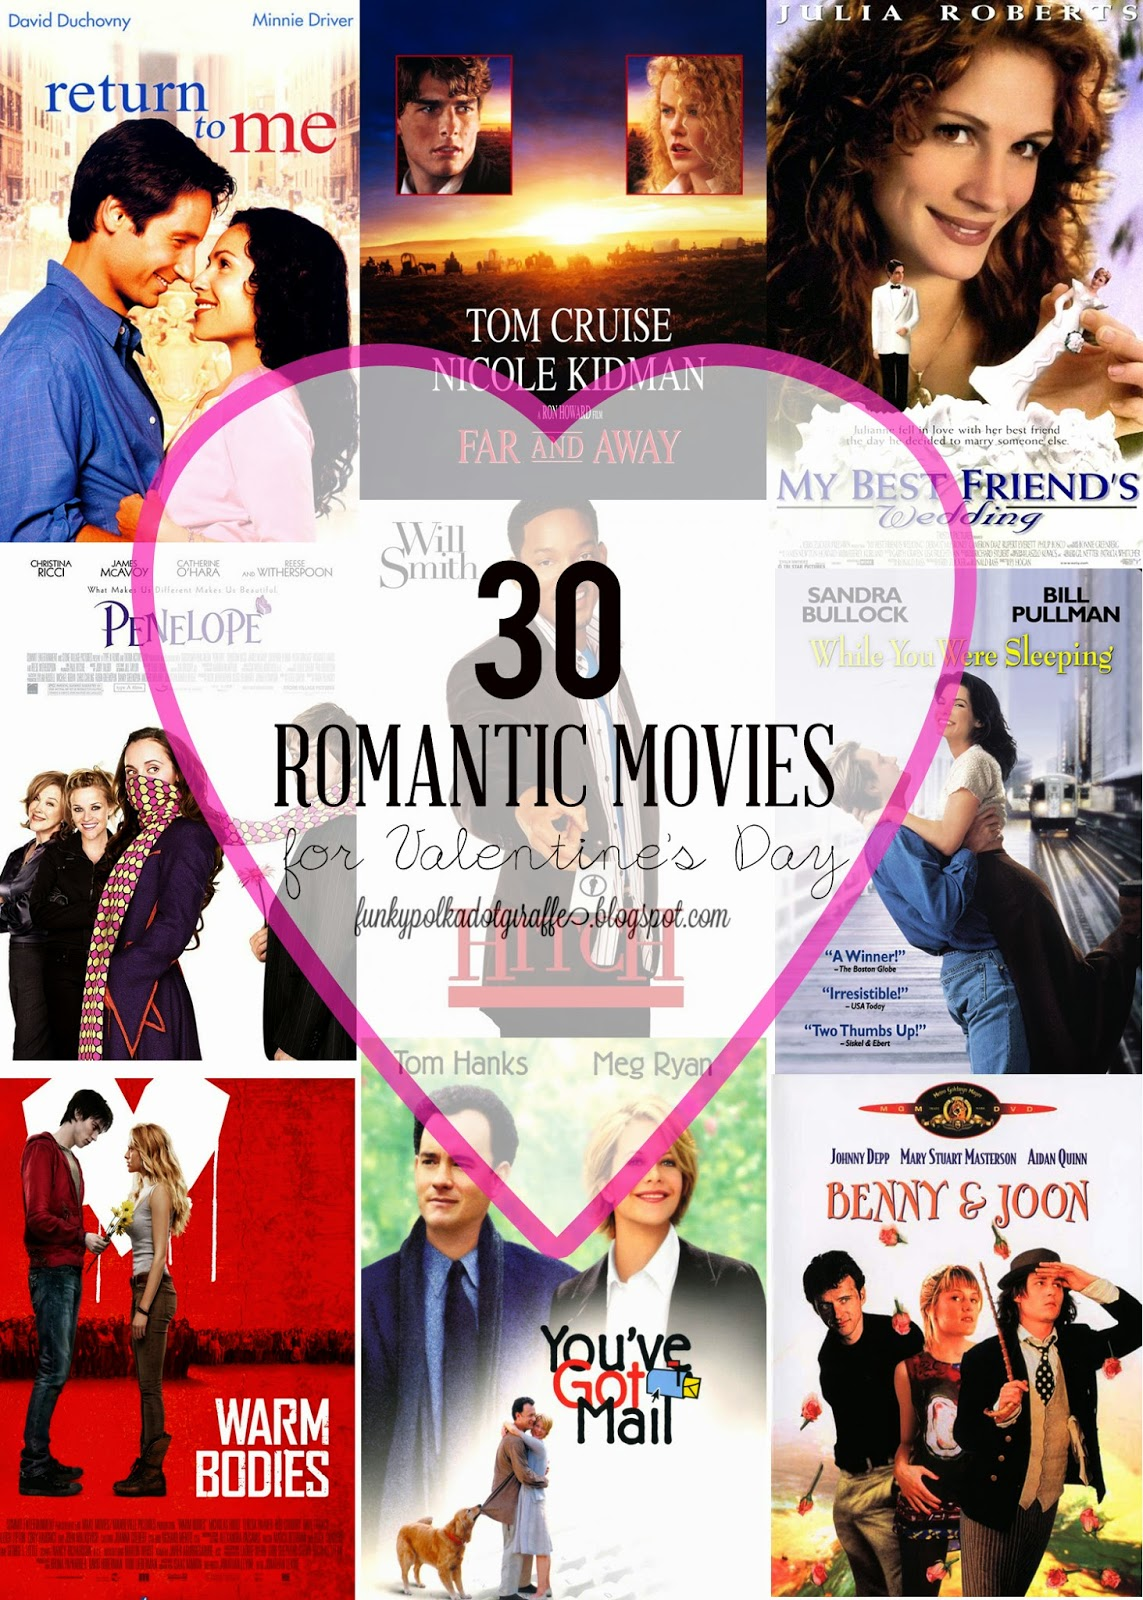 funky polkadot giraffe: 30 romantic movies to watch for, Ideas